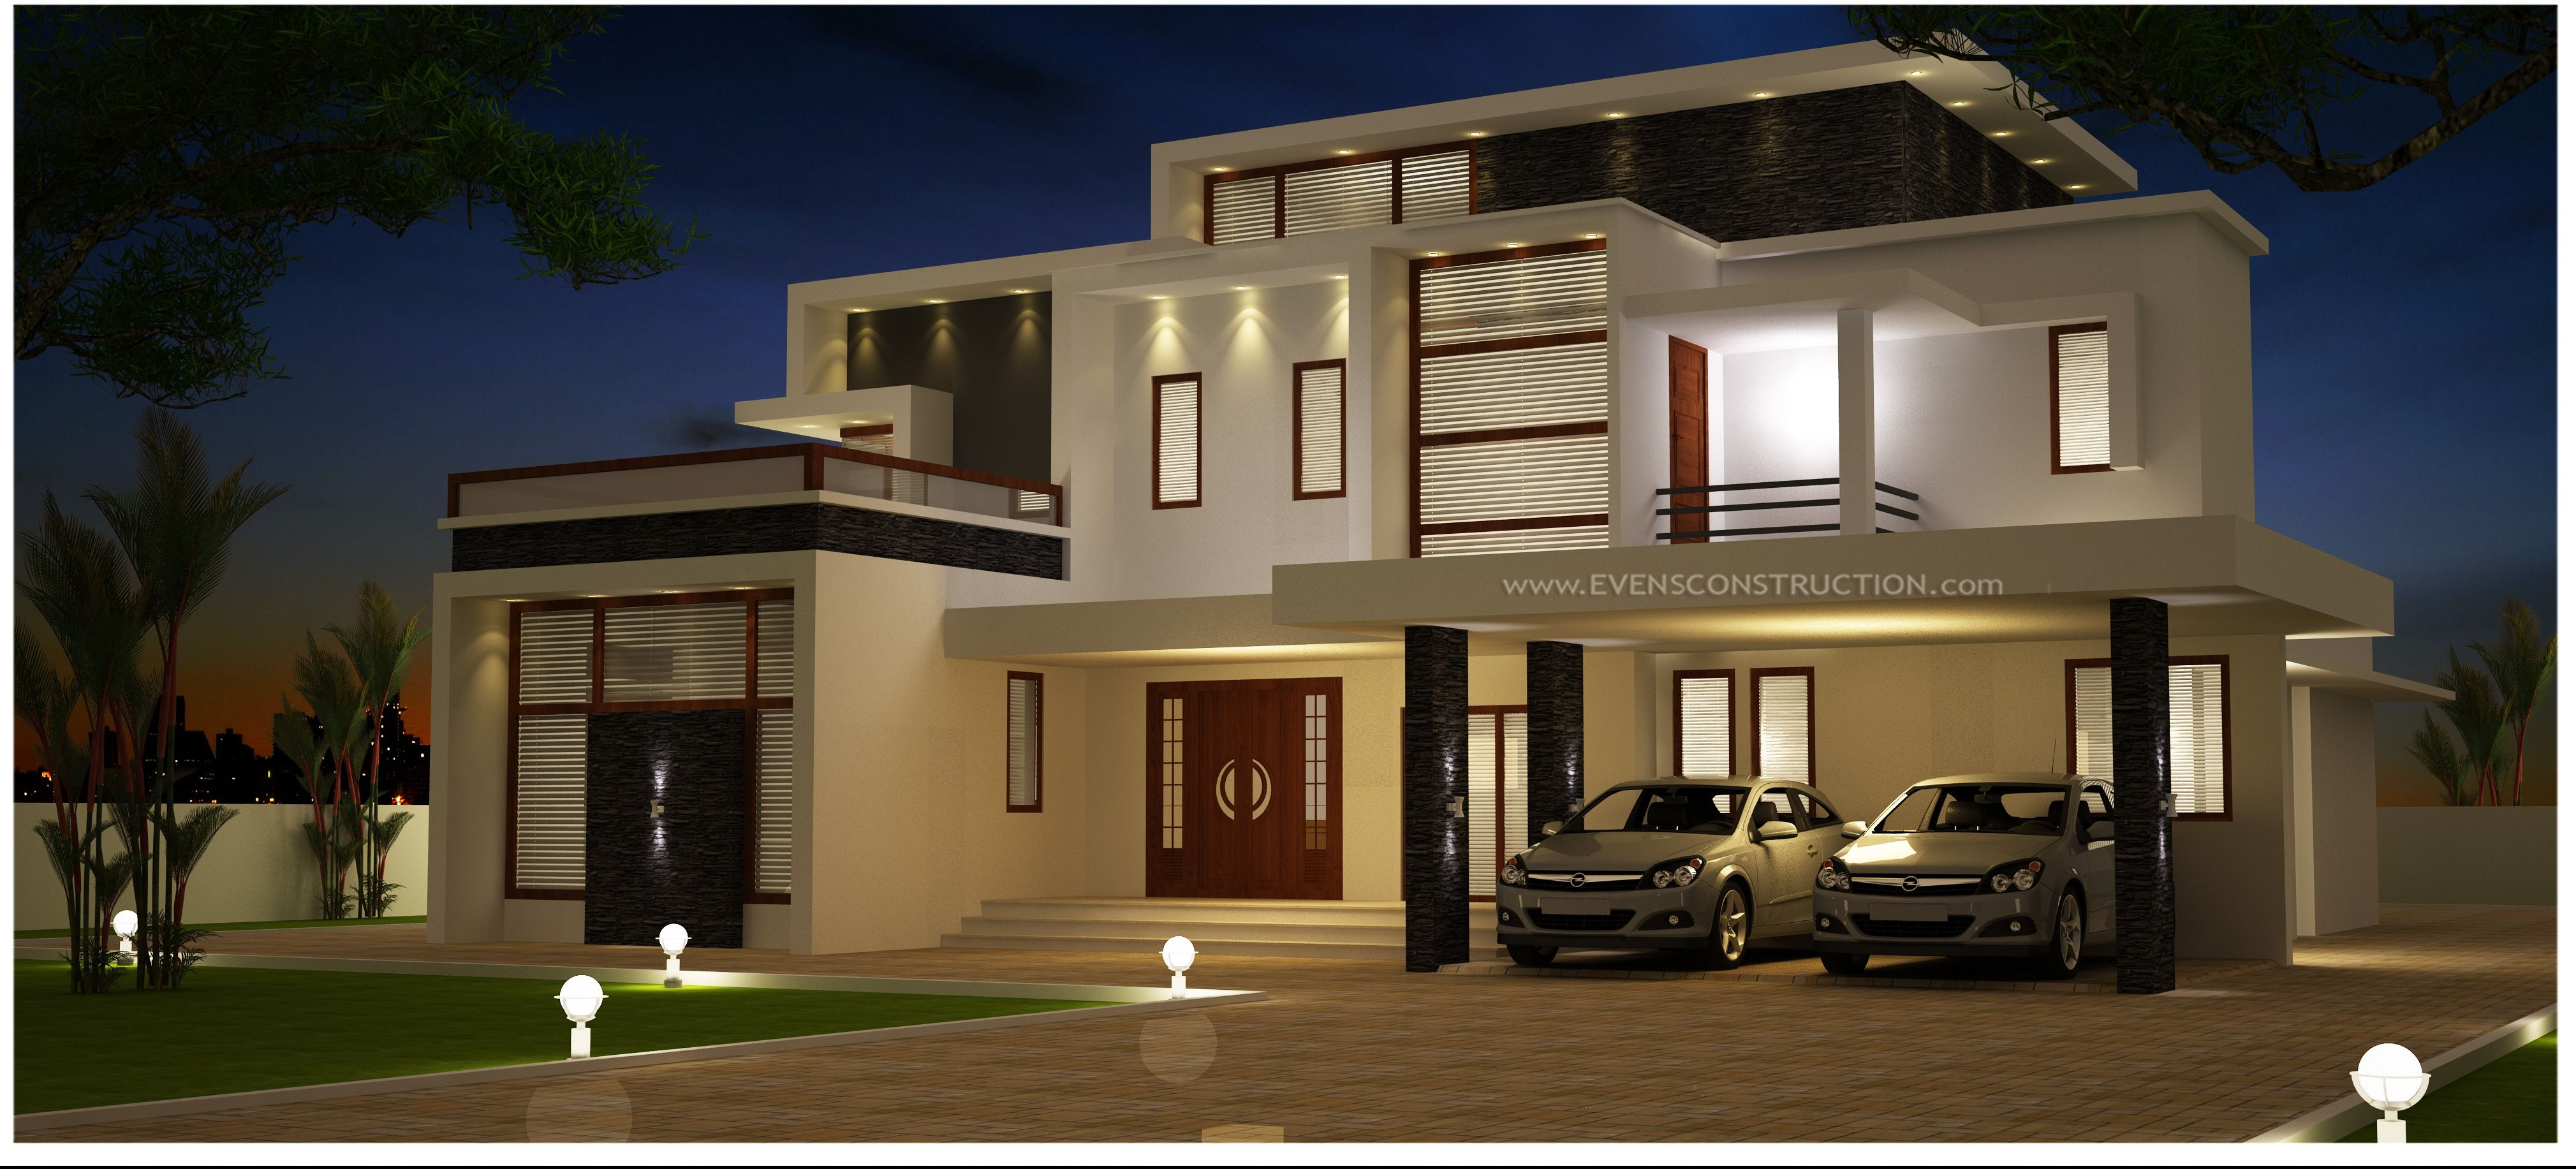 Contemperory style house designed by evens constructions villa plan kerala design houses also  rh pinterest